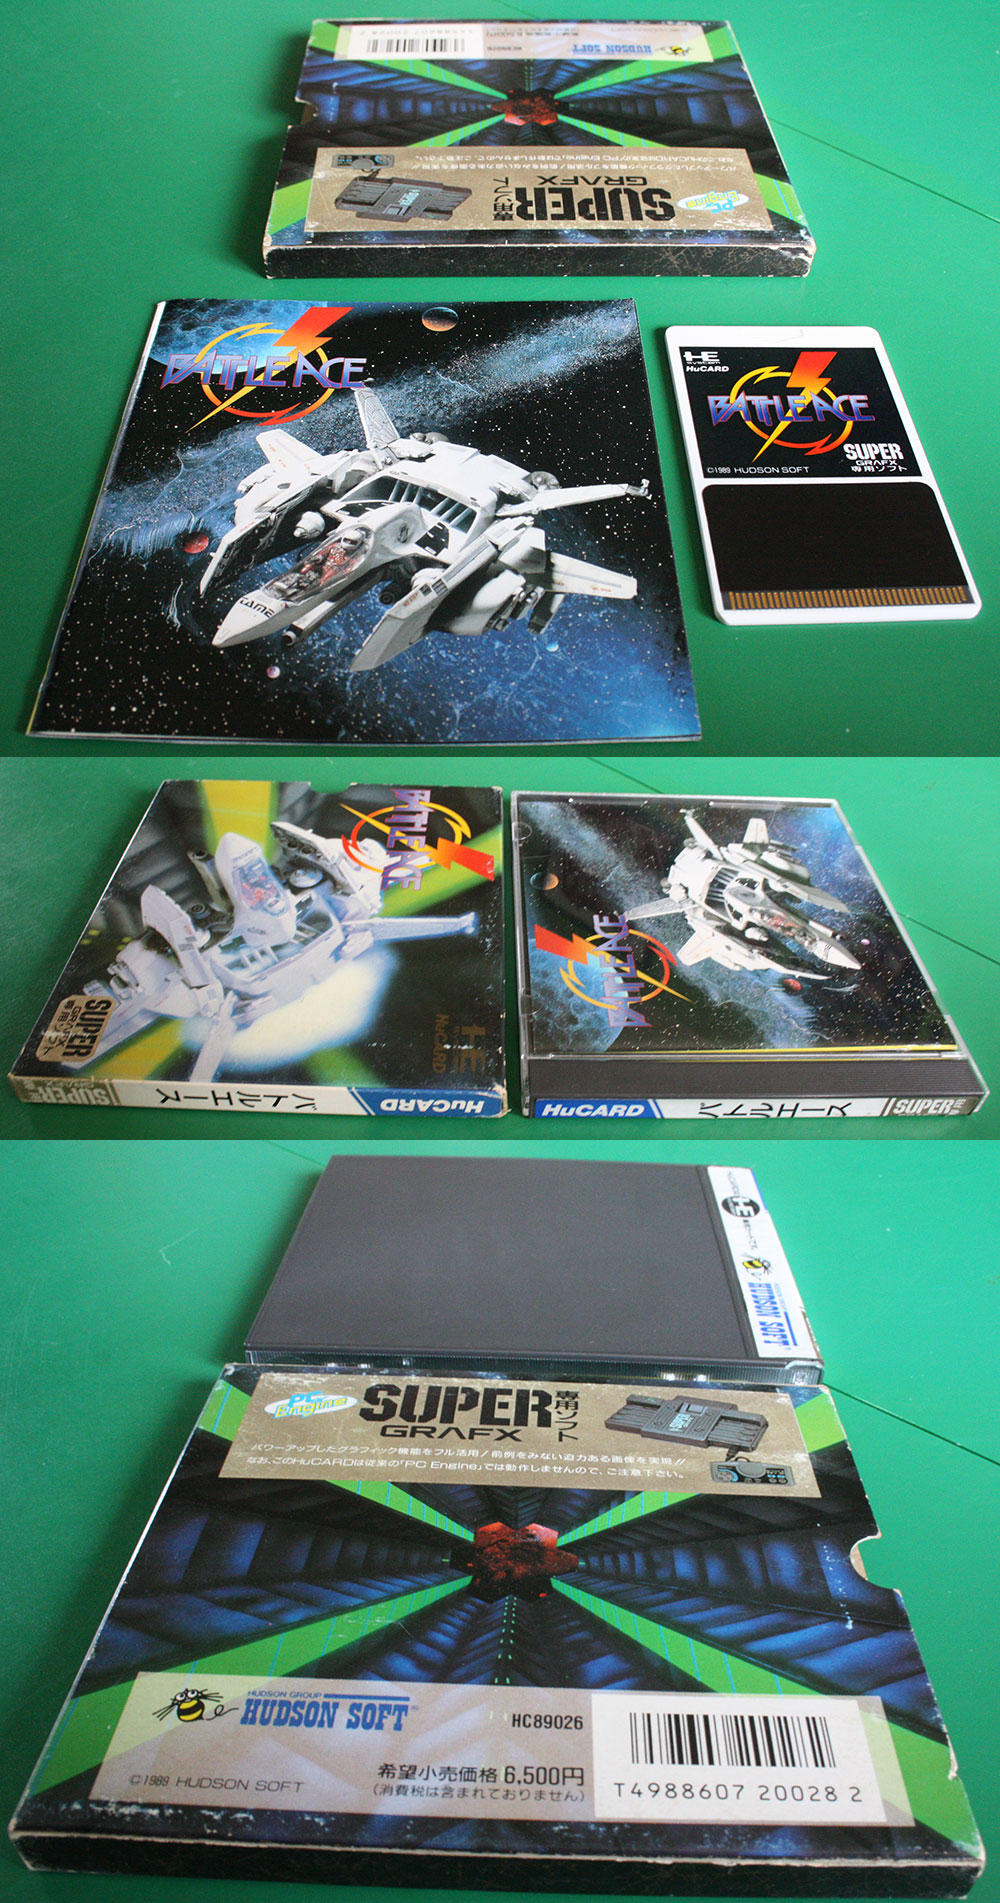 PC Engine Super Grafx Imported Japanese Video Games page 1